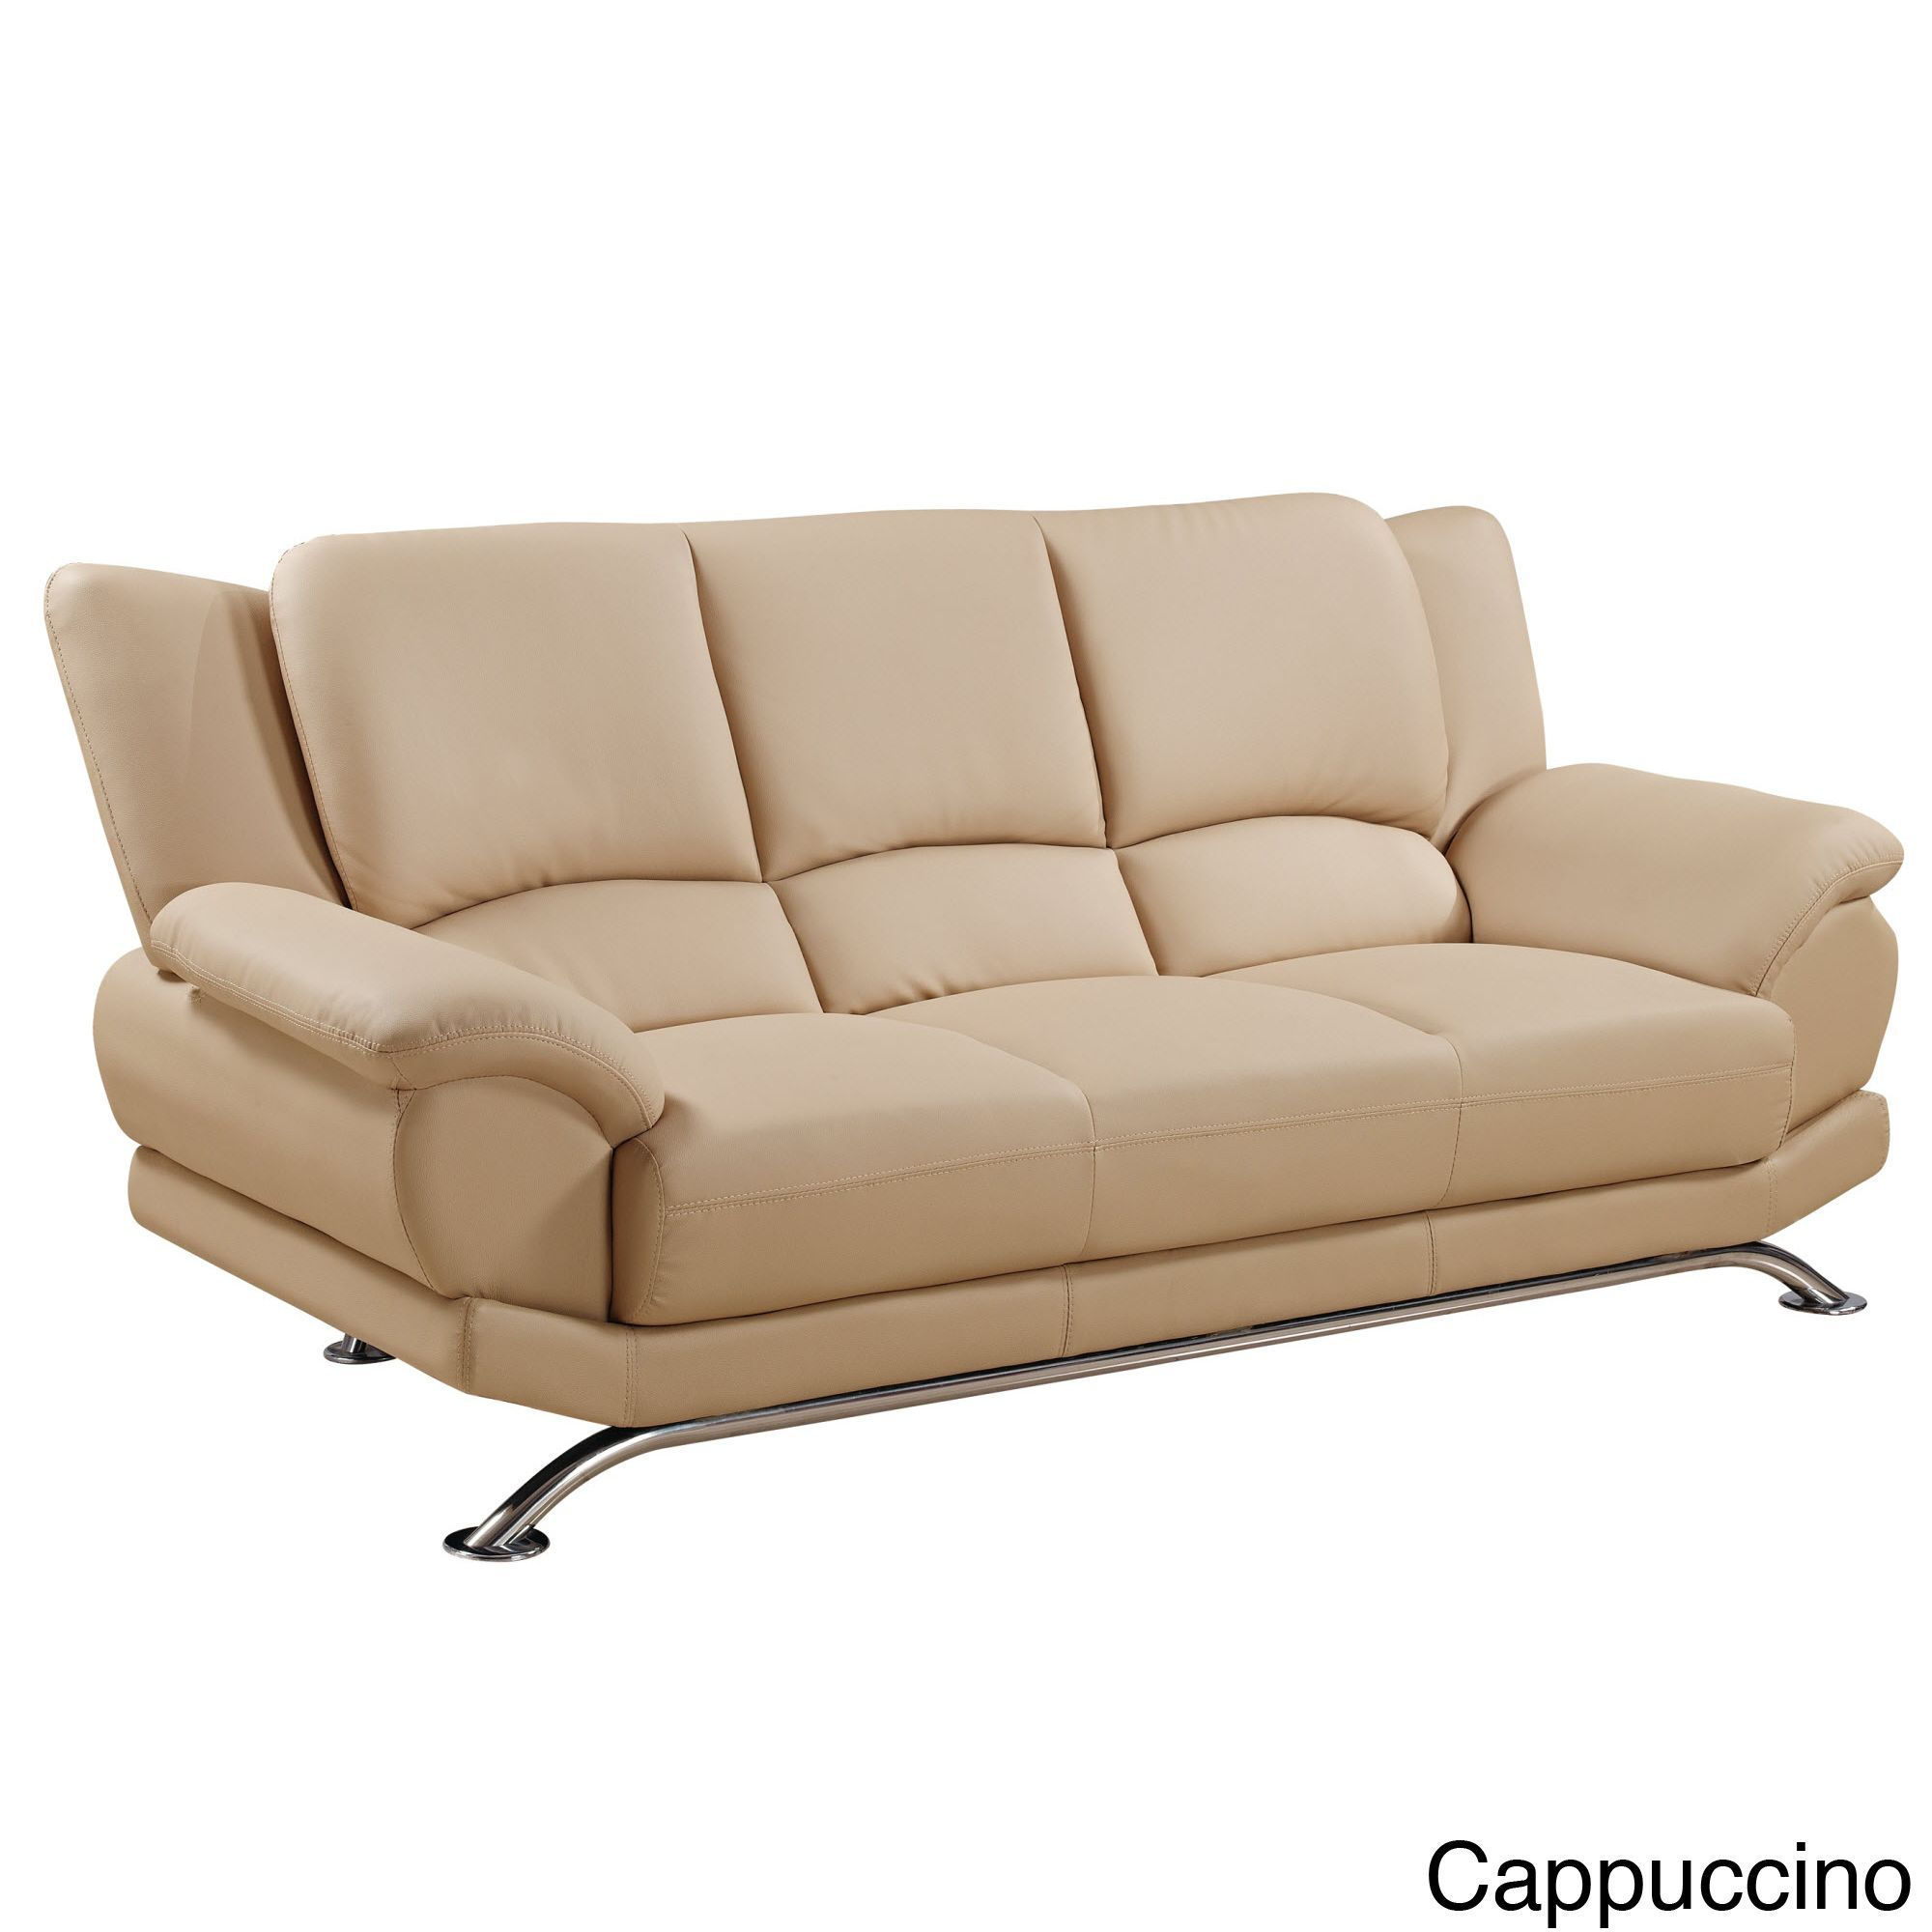 store living blvd modern furniture room of size nyc queens full sofas me coryc outlet contemporary harlem